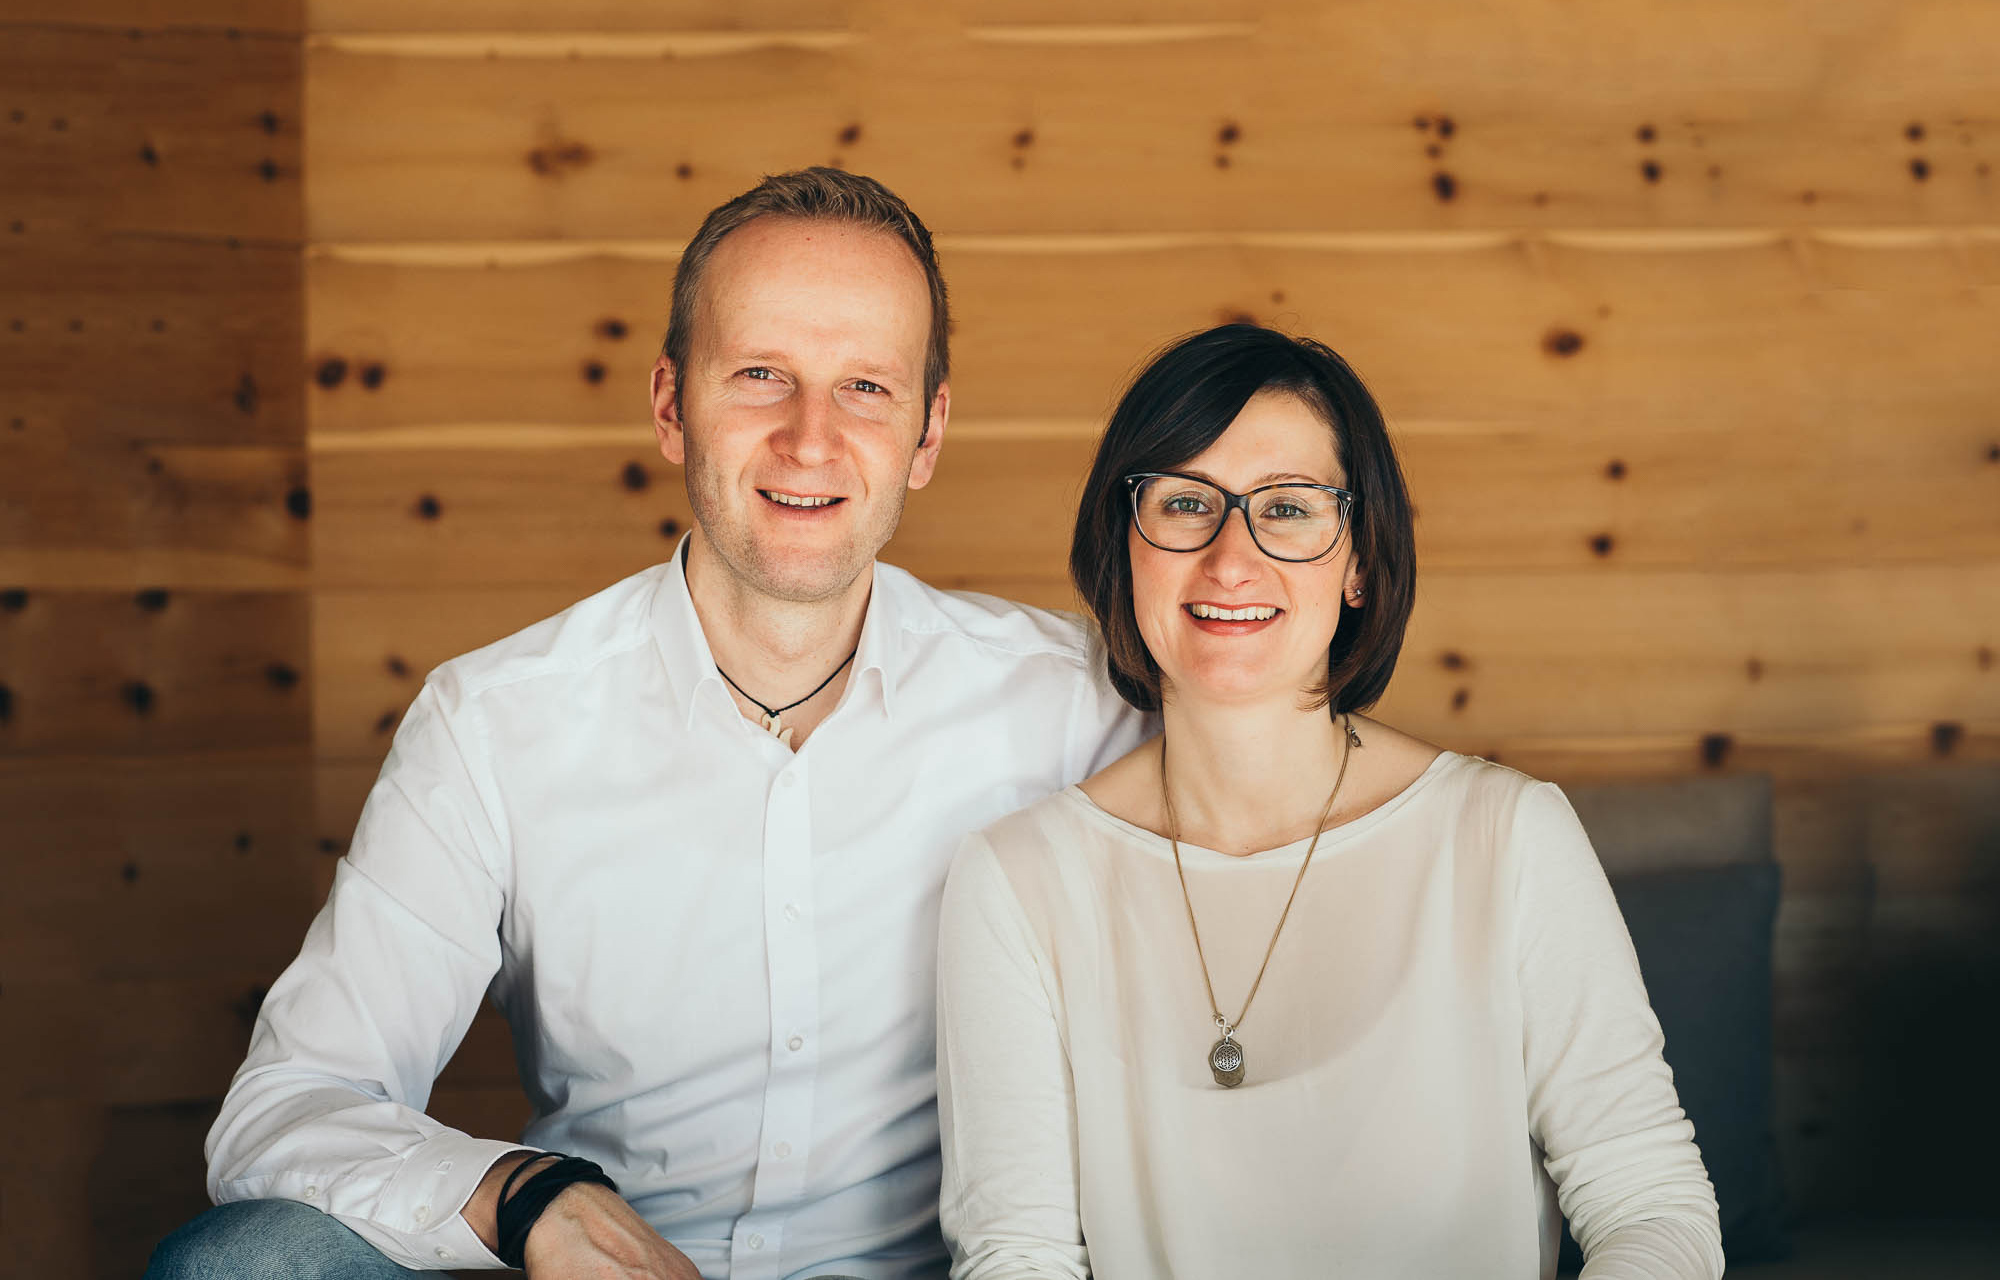 Barbara and Horst Peintner are currently in the process of being certified as an organic hotel with their Gitschberg